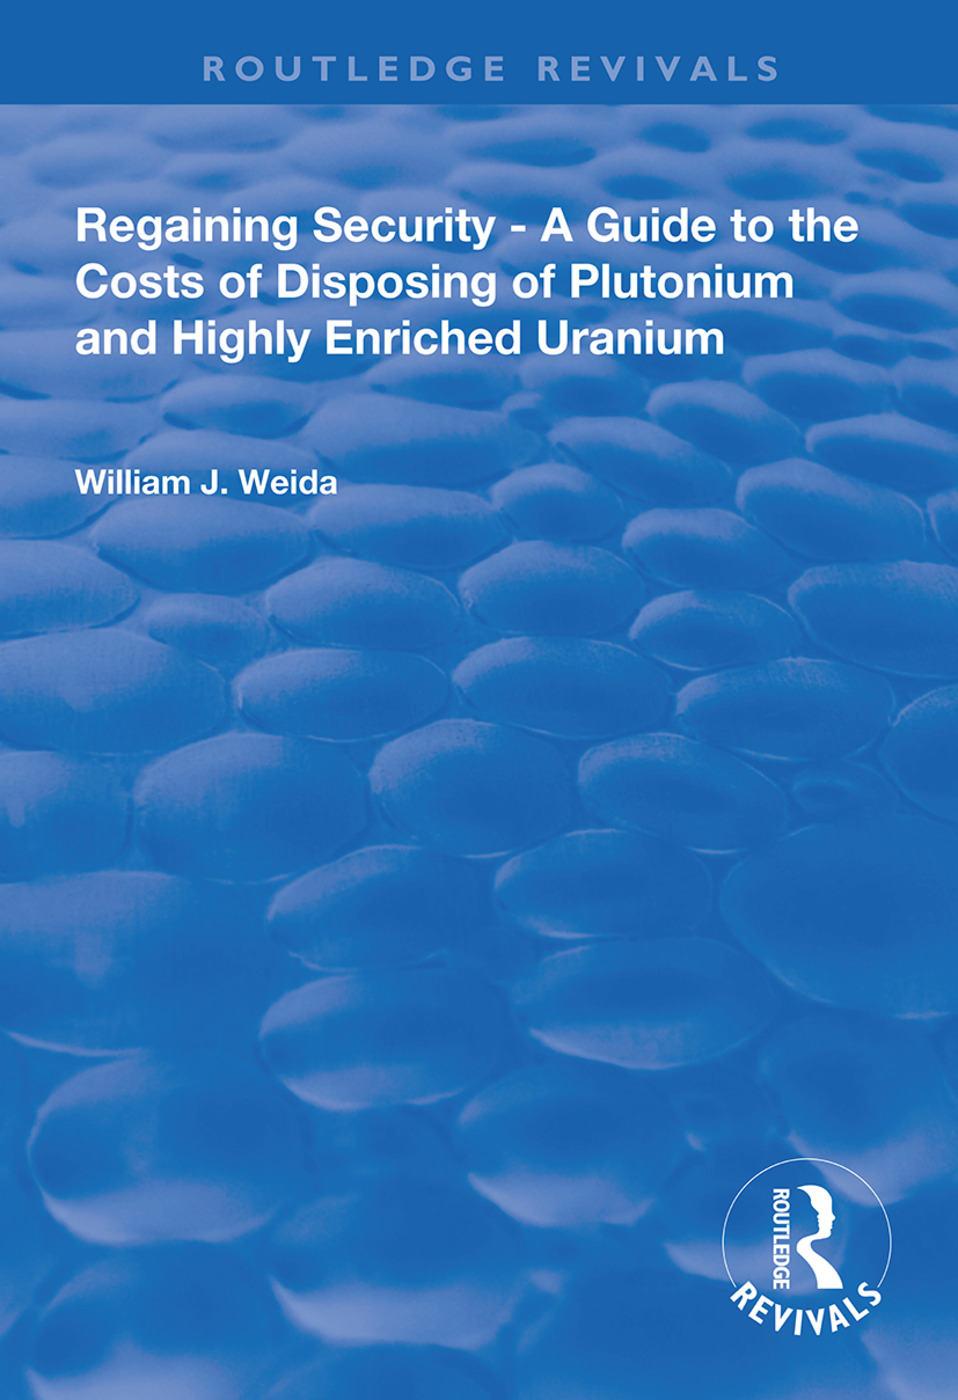 Regaining Security: A Guide to the Costs of Disposing of Plutonium and Highly Enriched Uranium book cover